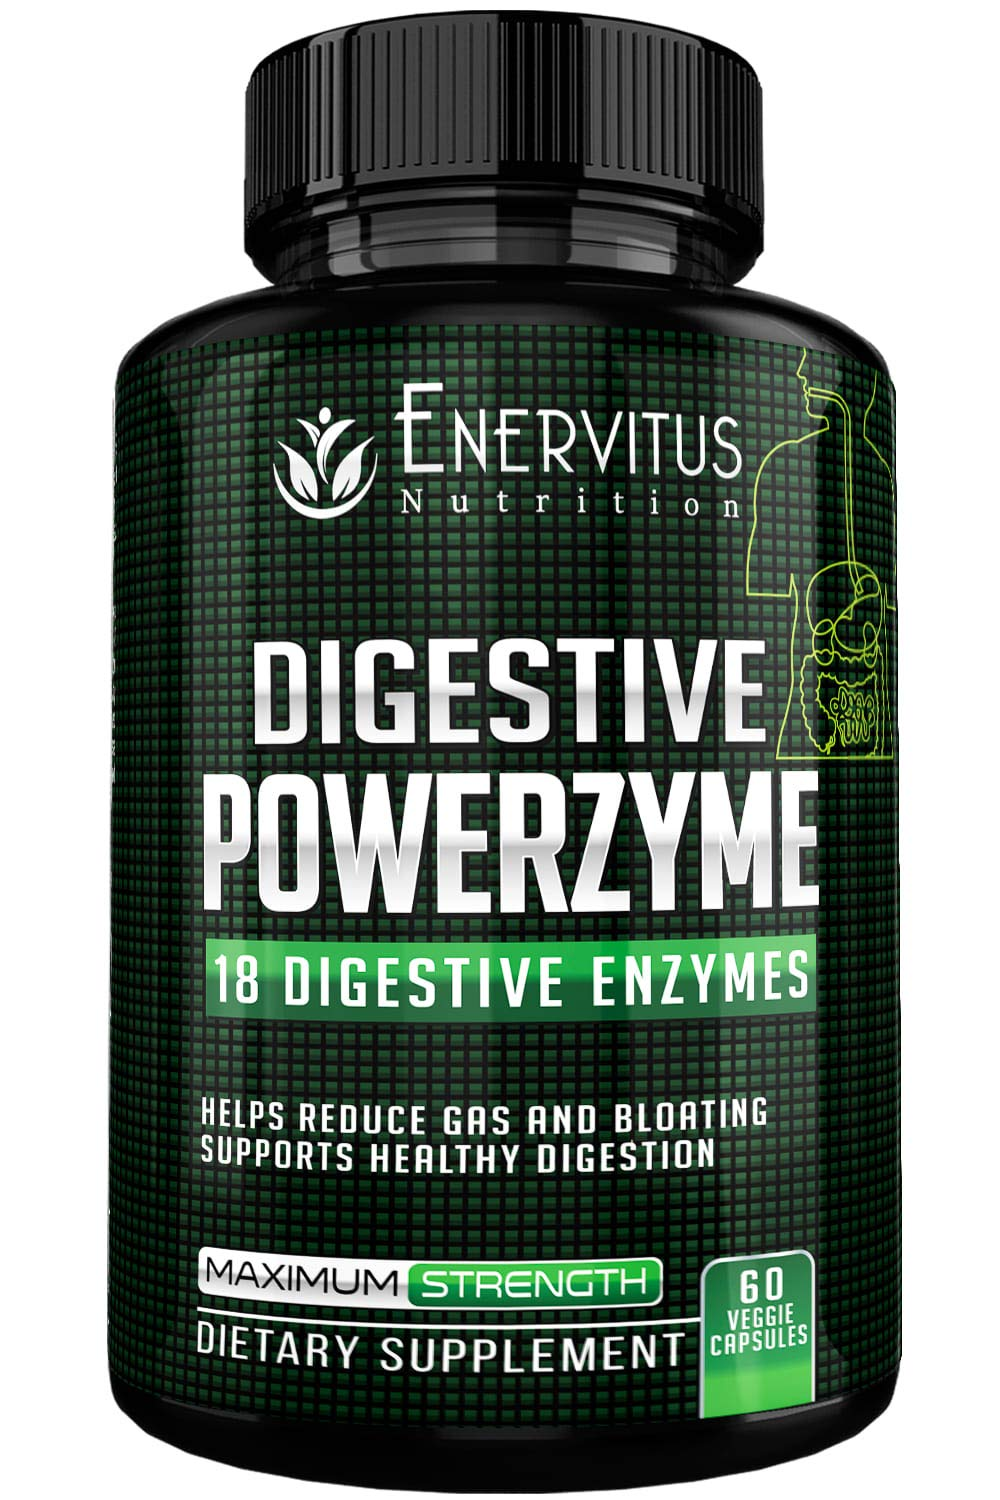 Digestive PowerZyme- Advanced Digestive Enzyme Supplements-18 Potent Enzymes Including Bromelain, Amylase, and Lactase to Relieve Indigestion, Gas, Bloating, Even Dairy and Gluten Issues! by Enervitus Nutrition